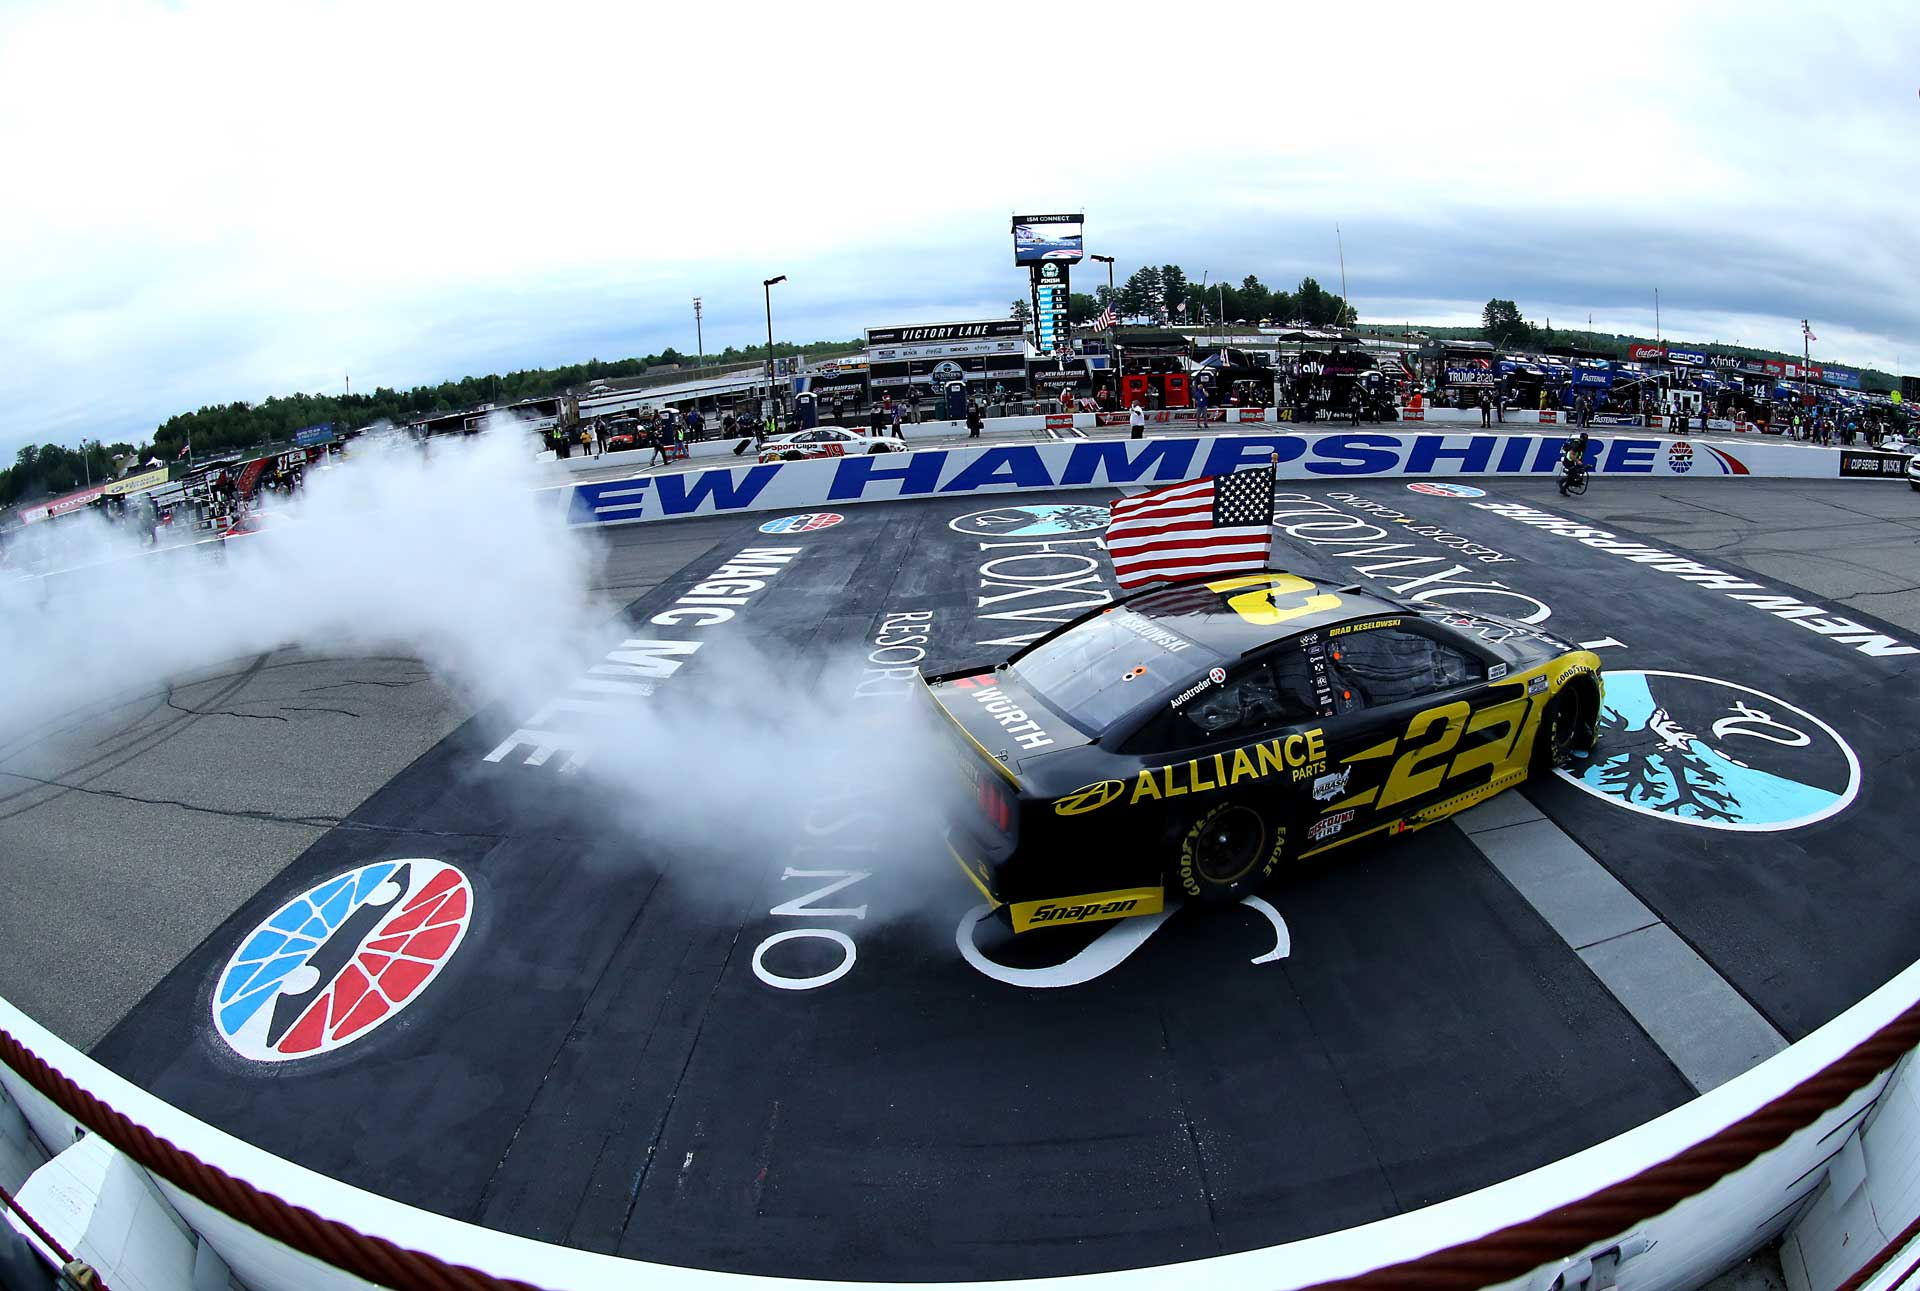 Brad Keselowski earns his third win of the season in New Hampshire